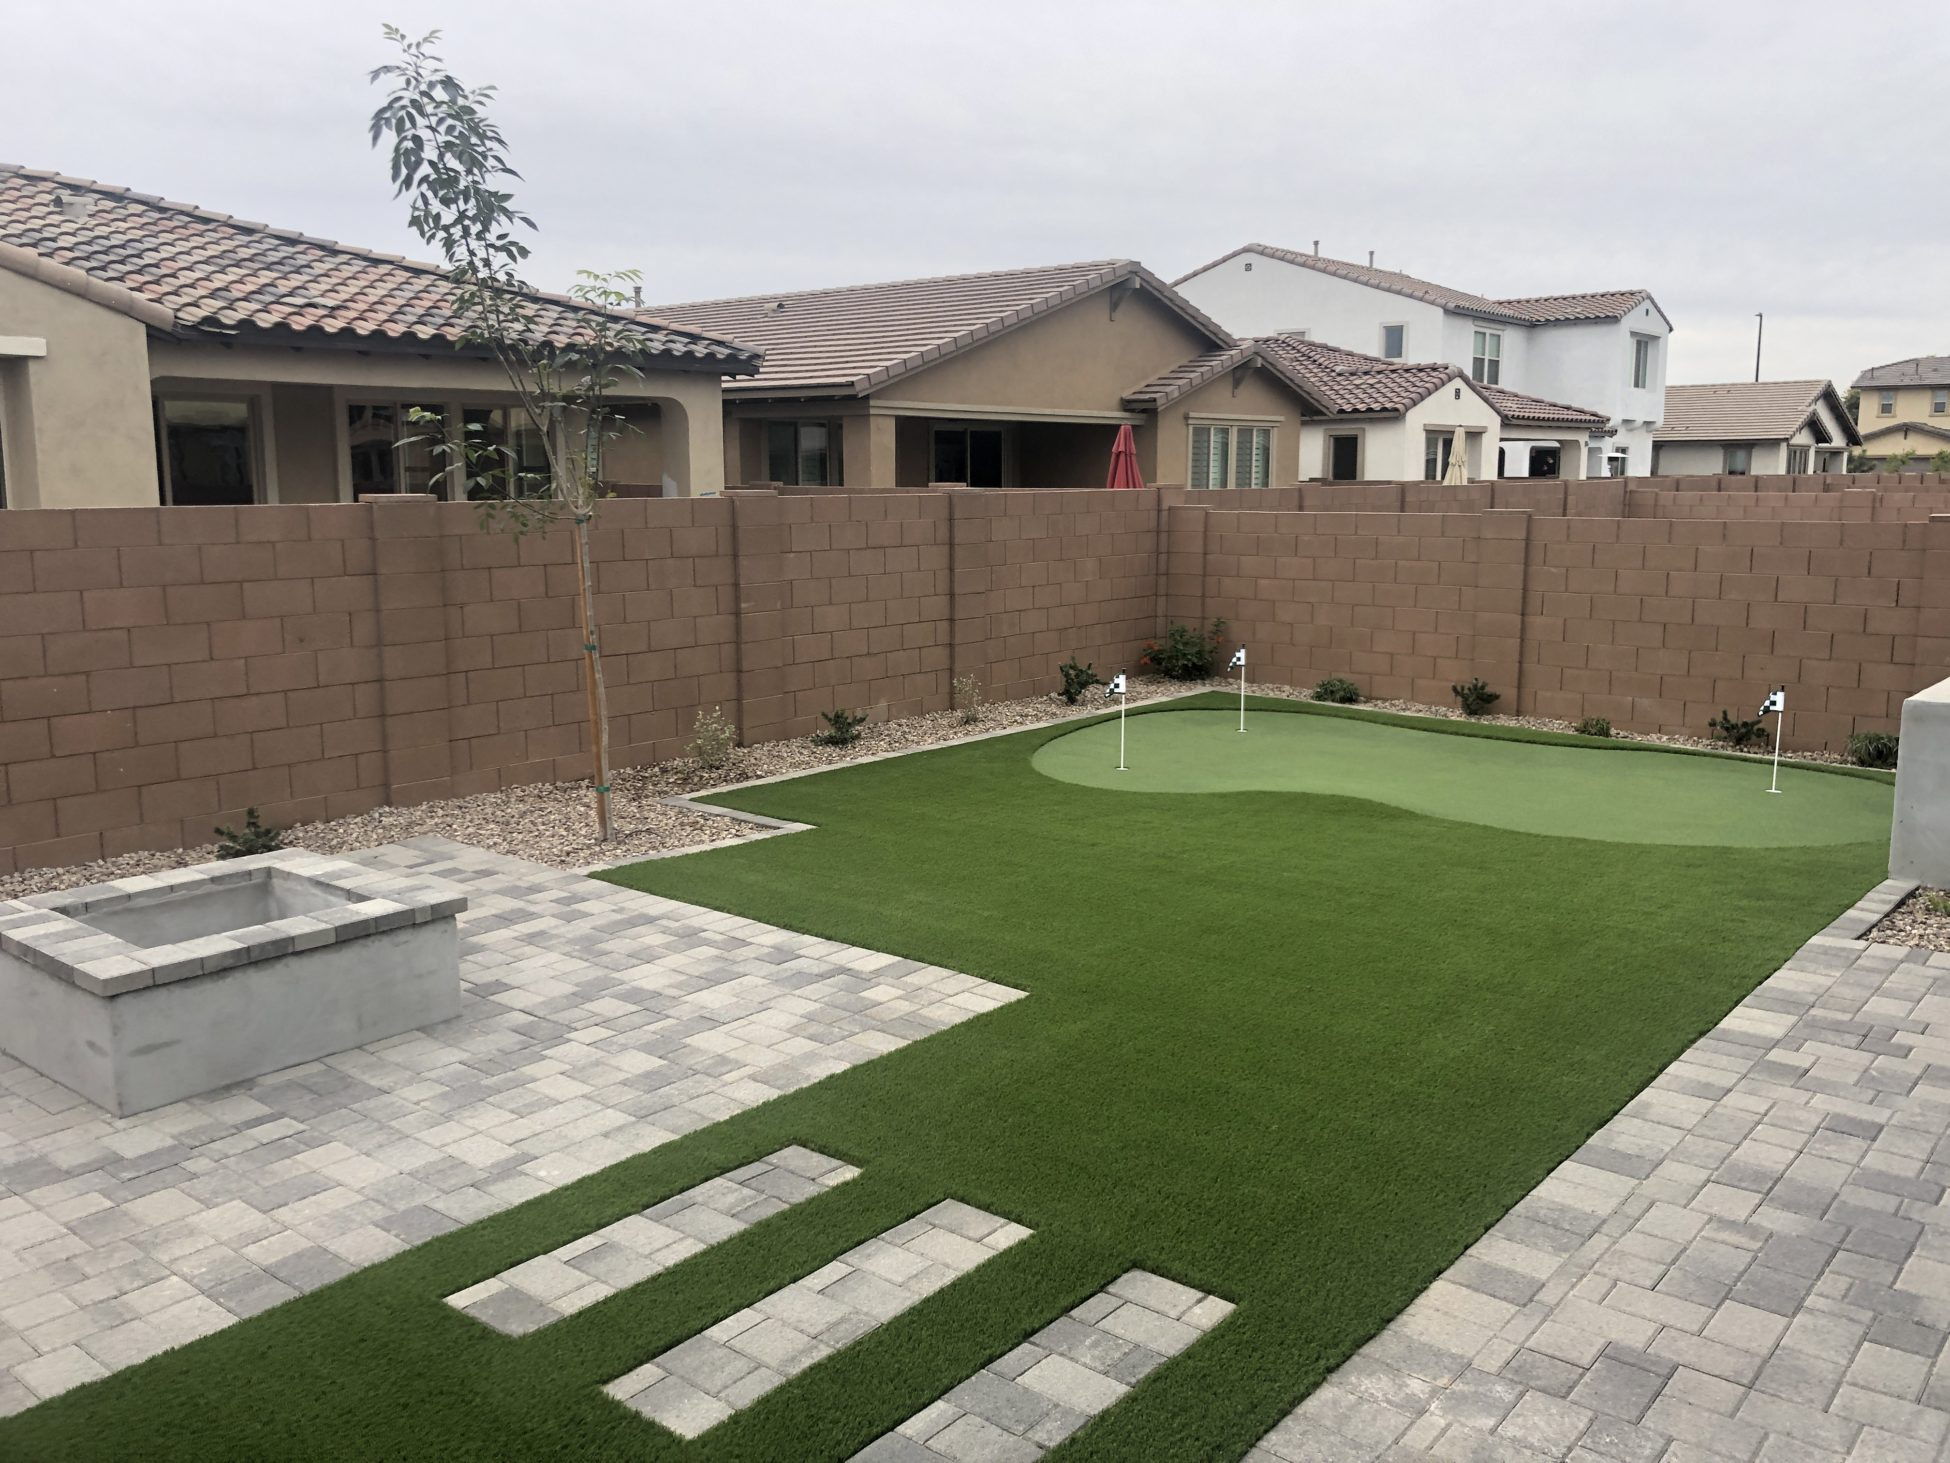 Check It Out Outdoor Putting Green In Arizona Backyard Landscape regarding 10 Genius Tricks of How to Craft Arizona Backyard Landscape